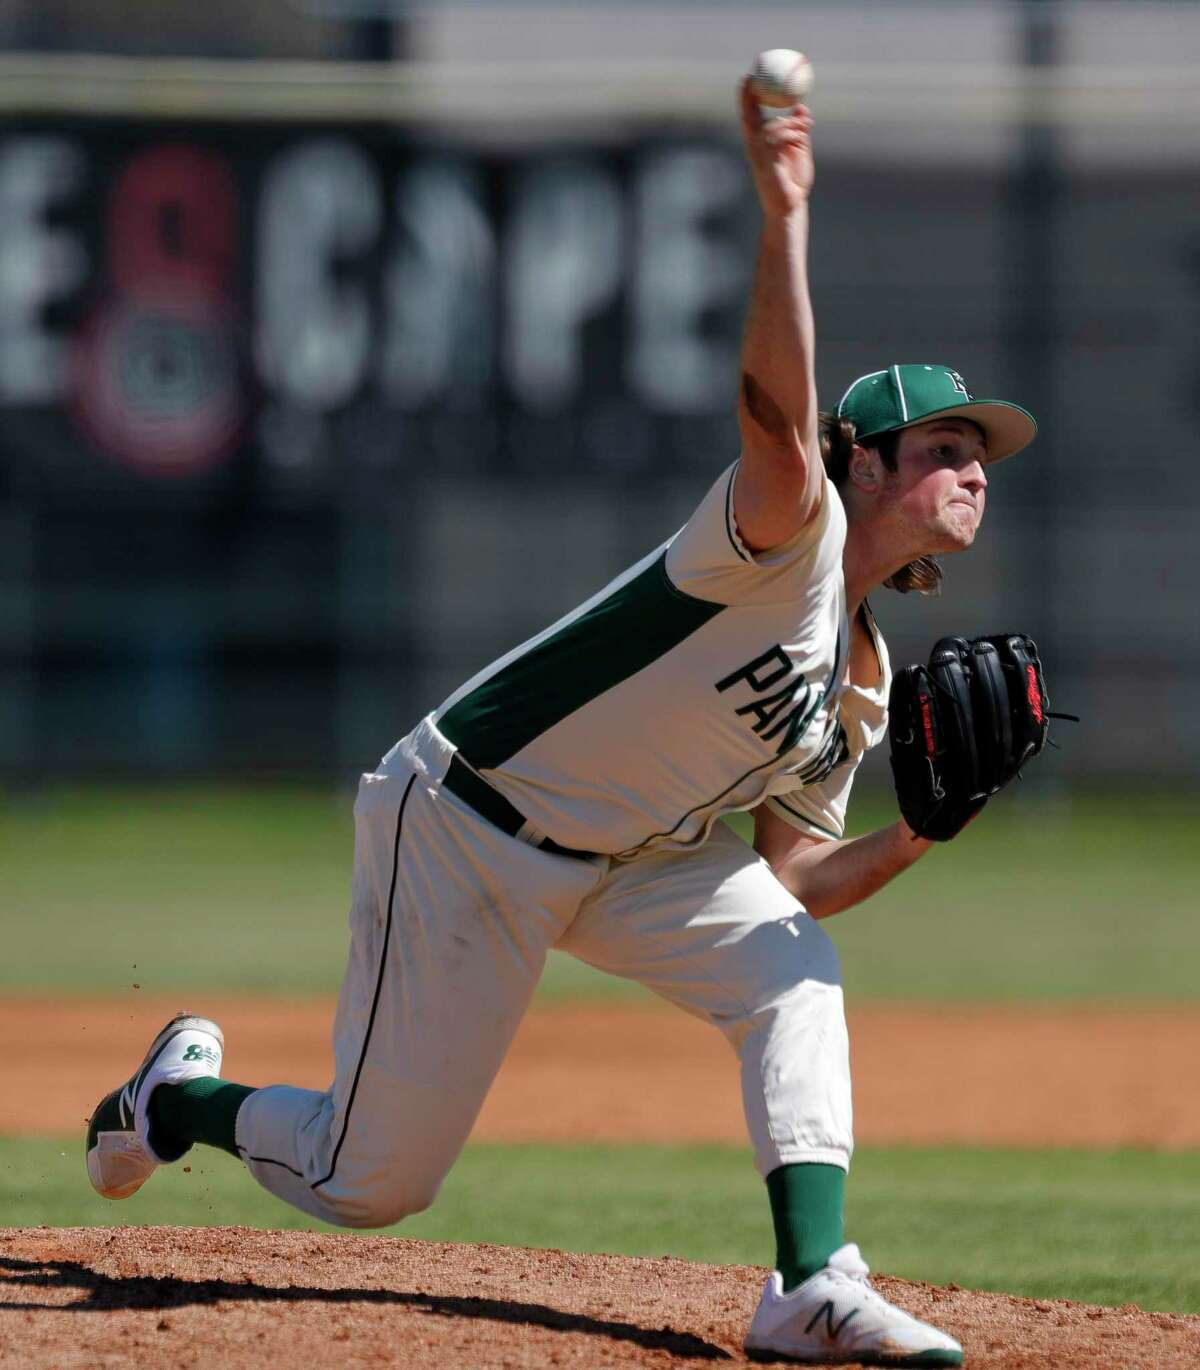 Kingwood Park pitcher Tyler Ward (5) throws during a non-district high school baseball game at Kingwood Park High School, Thursday, Feb. 27, 2020, in Kingwood. The Woodlands defeated Kingwood Park 10-0.